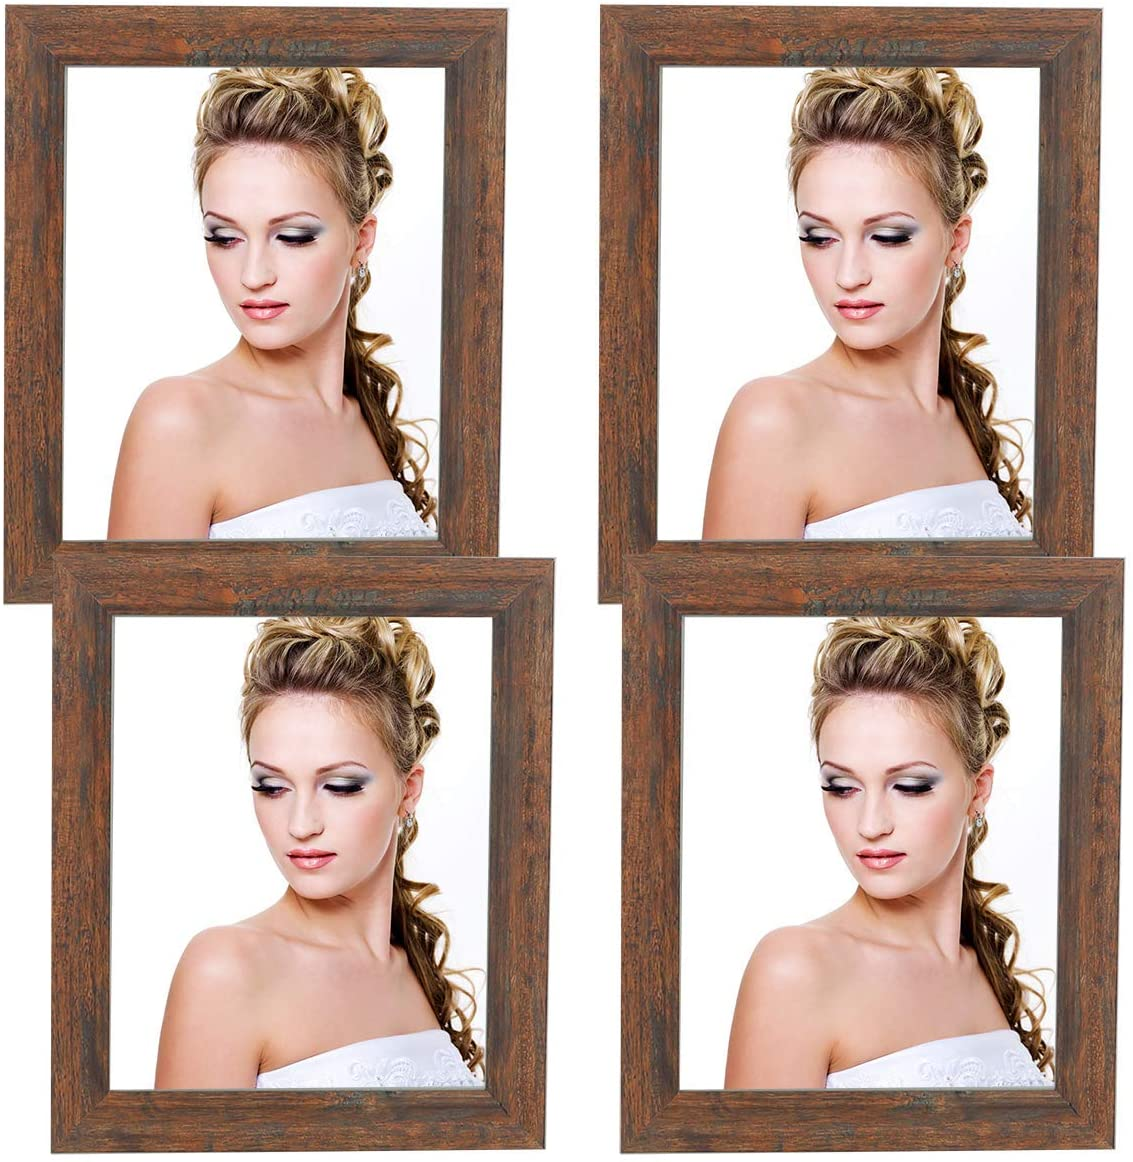 Generies JOOYHOOM 8 x 10 Inch Picture Frame, Burned Wood Rustic 8 x 10,Wooden Photo Frames 8 x 10 4Pack with High Definition Glass for Tabletop or Wall Dco Burned Rustic(YD-US001-BR-P10X8(4PK)